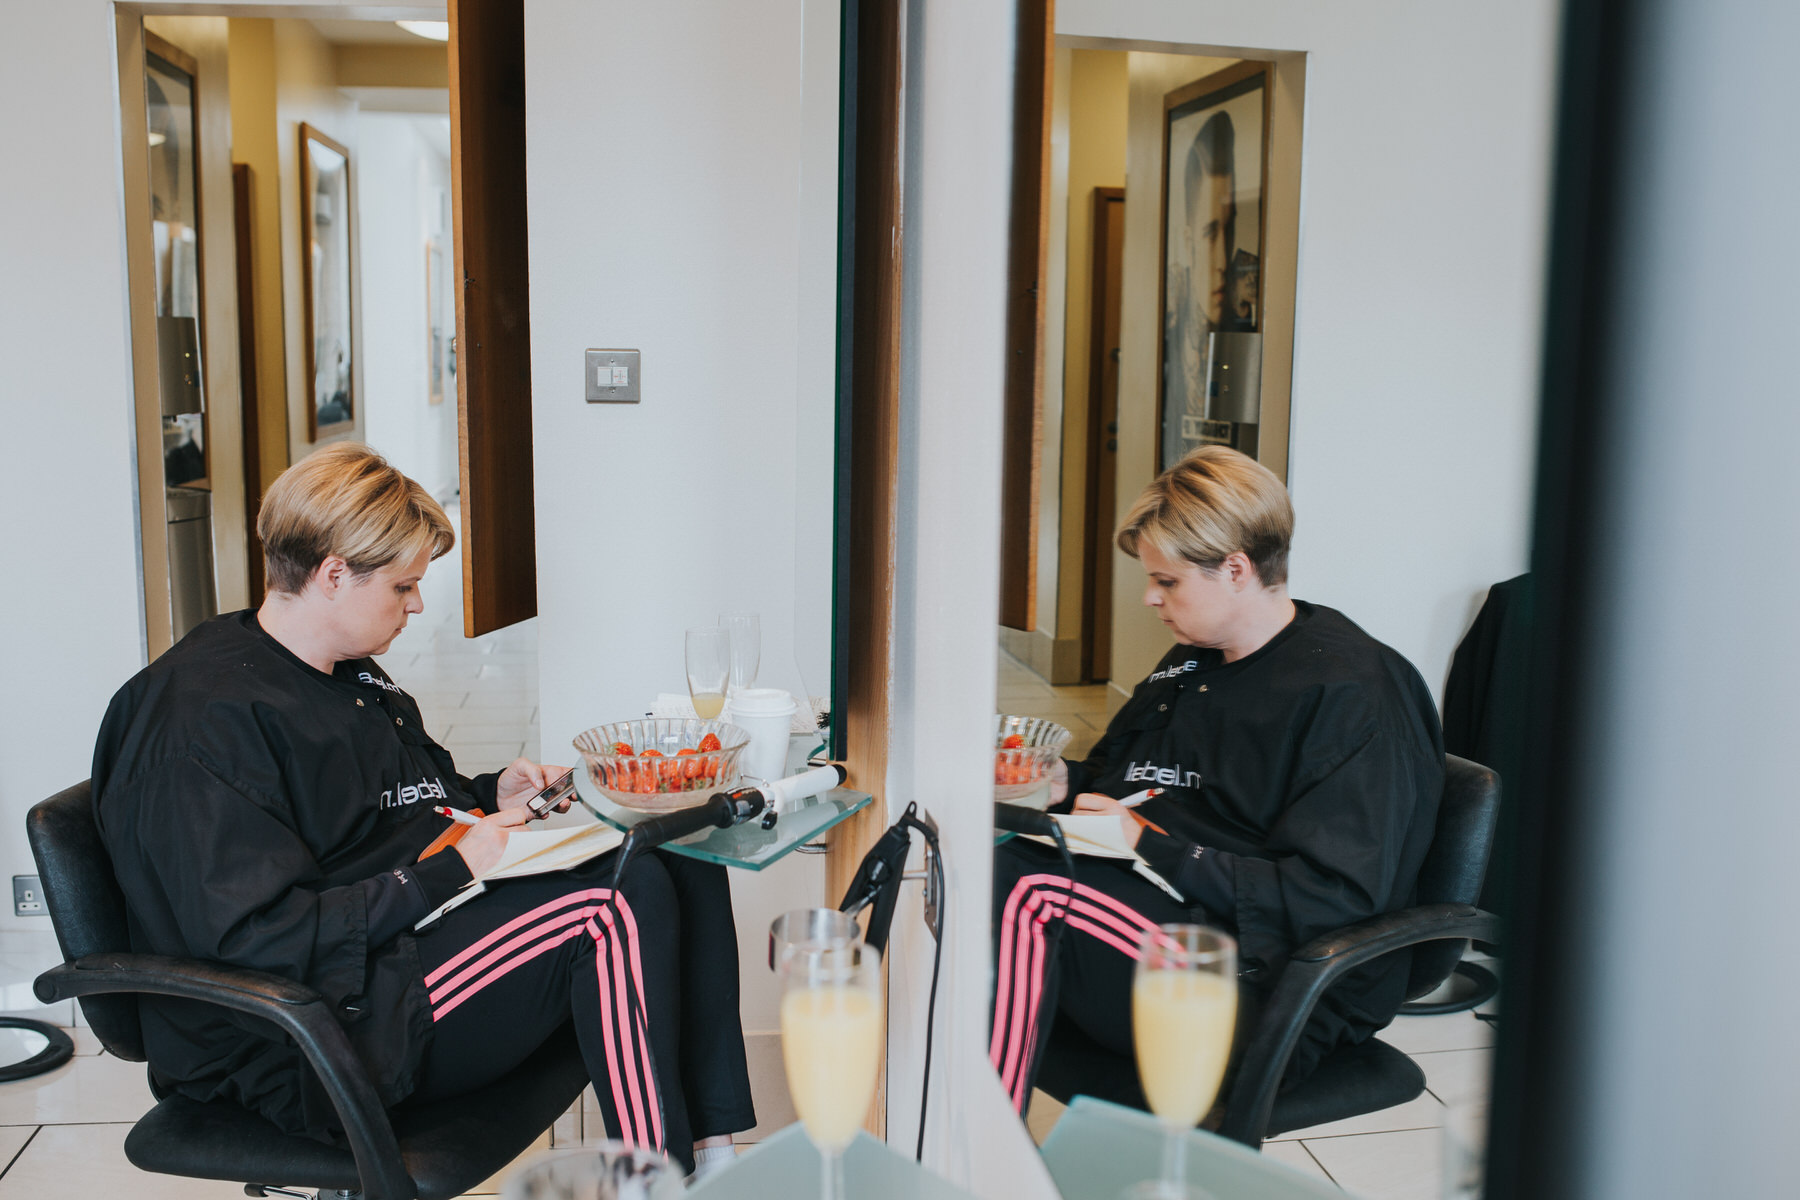 4 bride writing vows during bridal prep at hairdressers.jpg